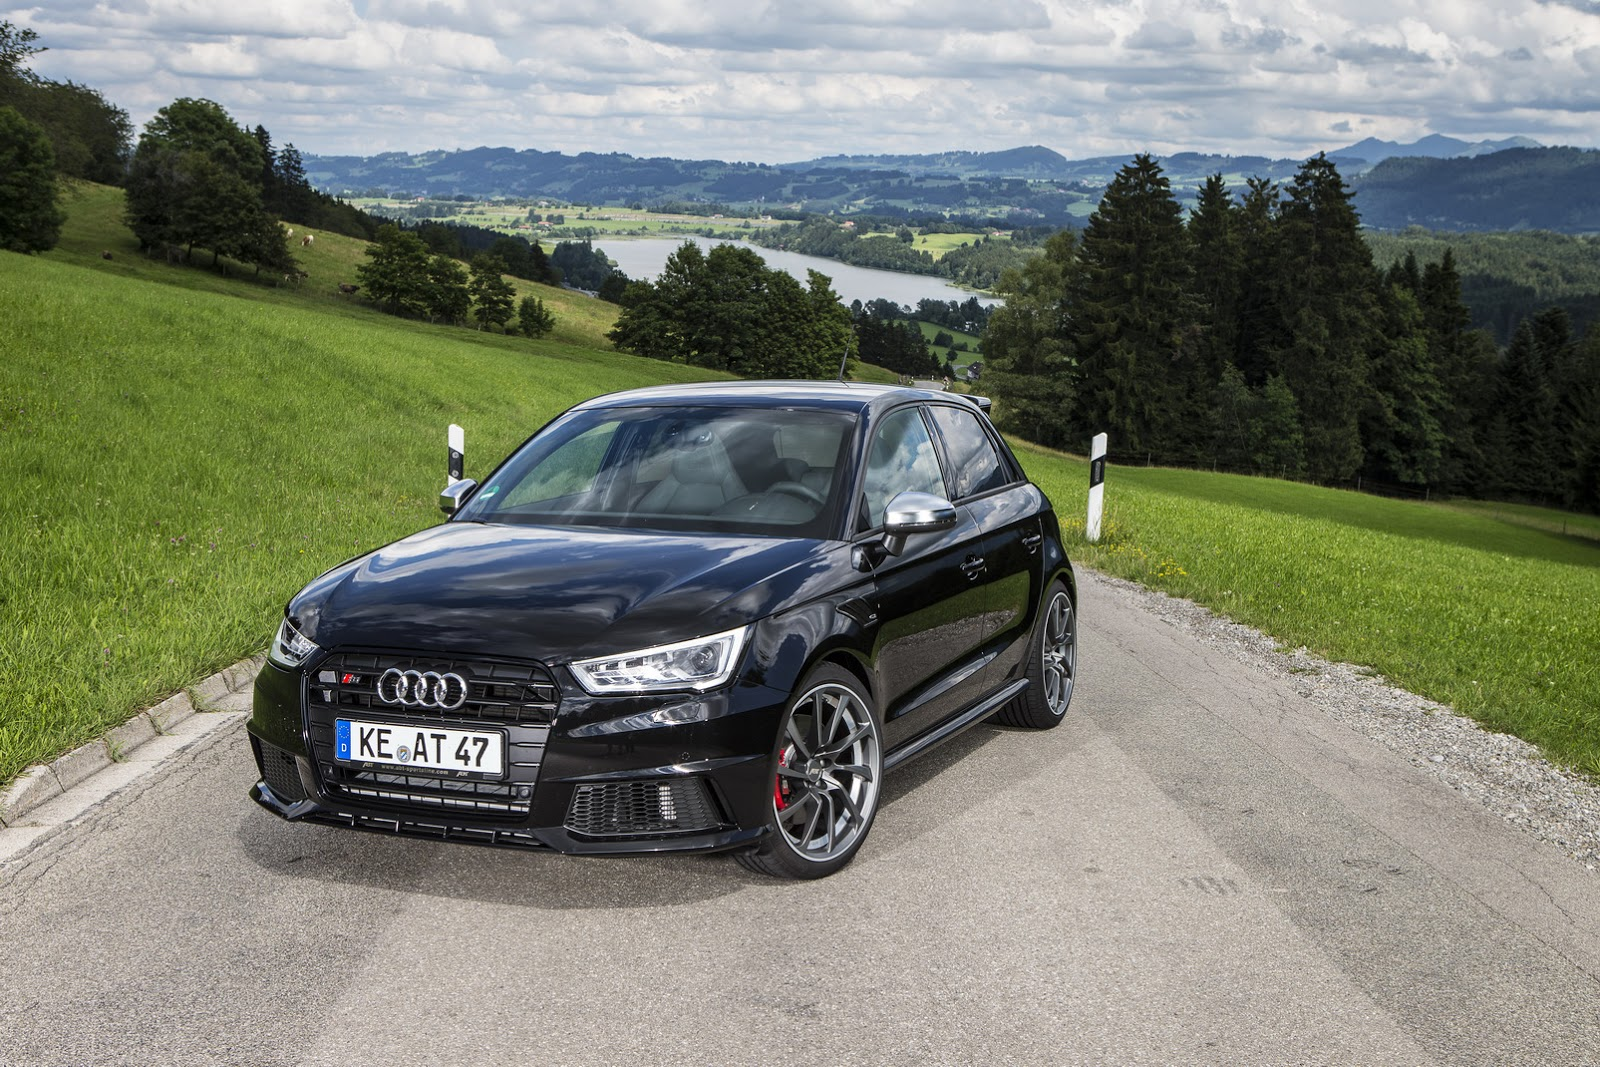 new audi s1 by abt has 310ps under its hood carscoops. Black Bedroom Furniture Sets. Home Design Ideas